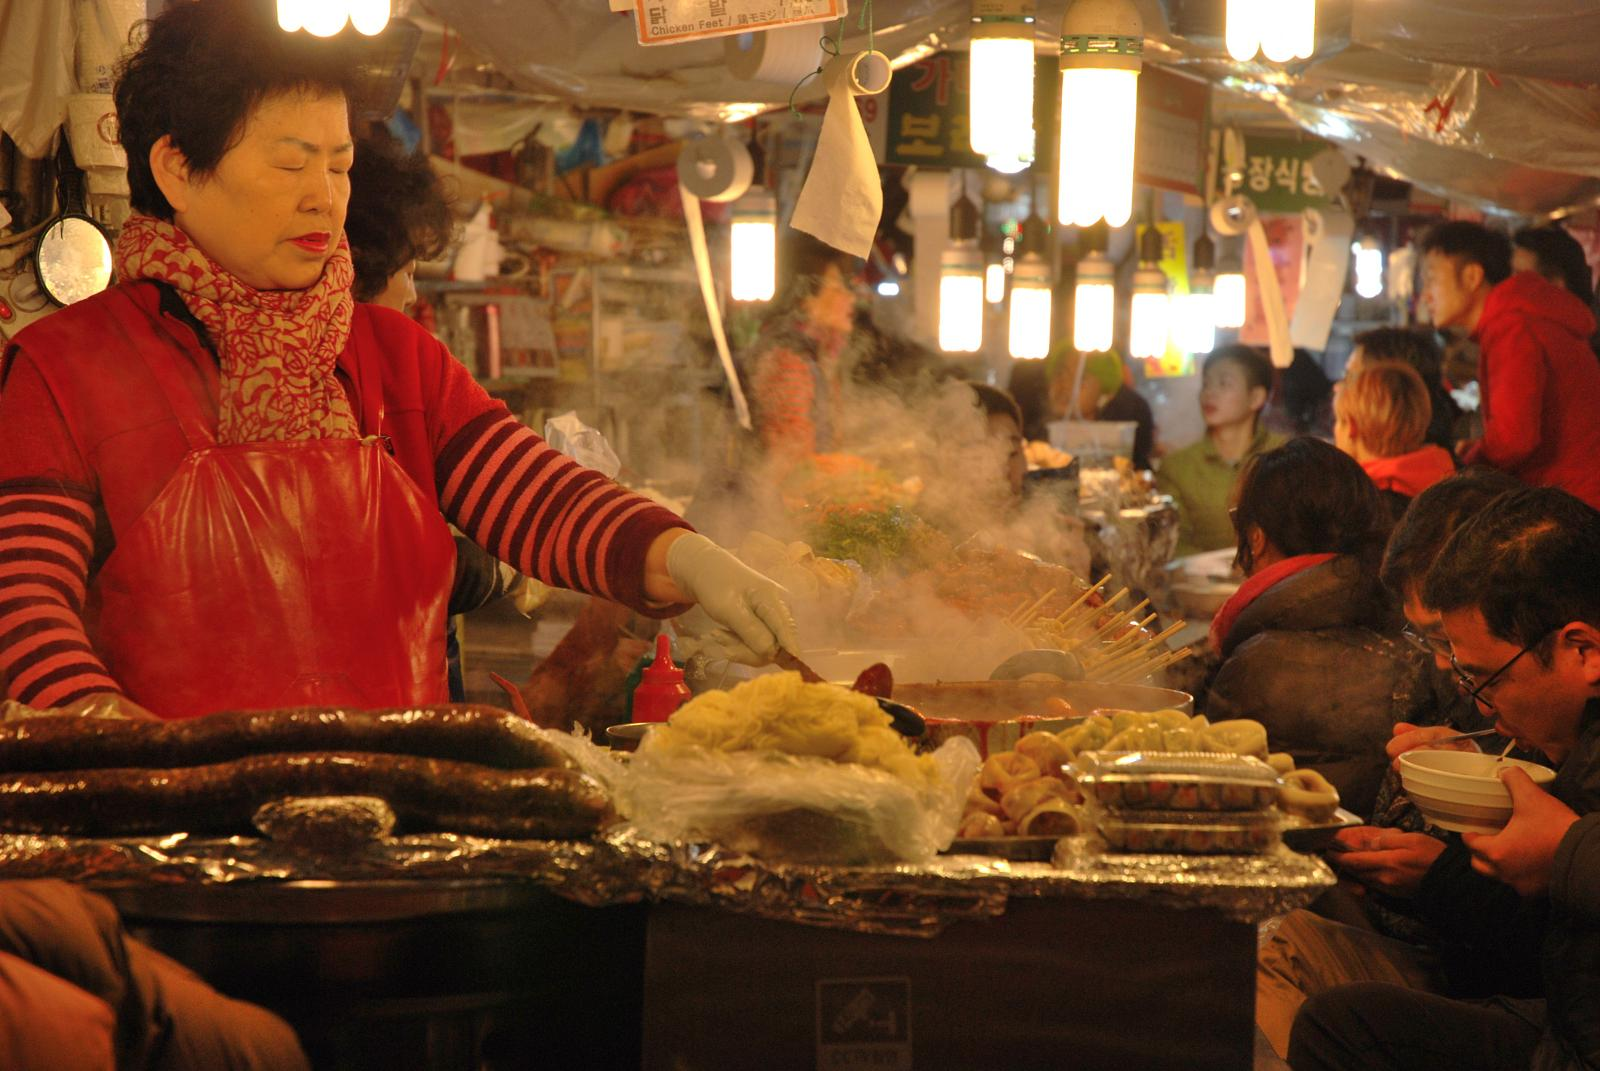 Foto von Seoul, South Korea - Traditional Markets and Food Streets